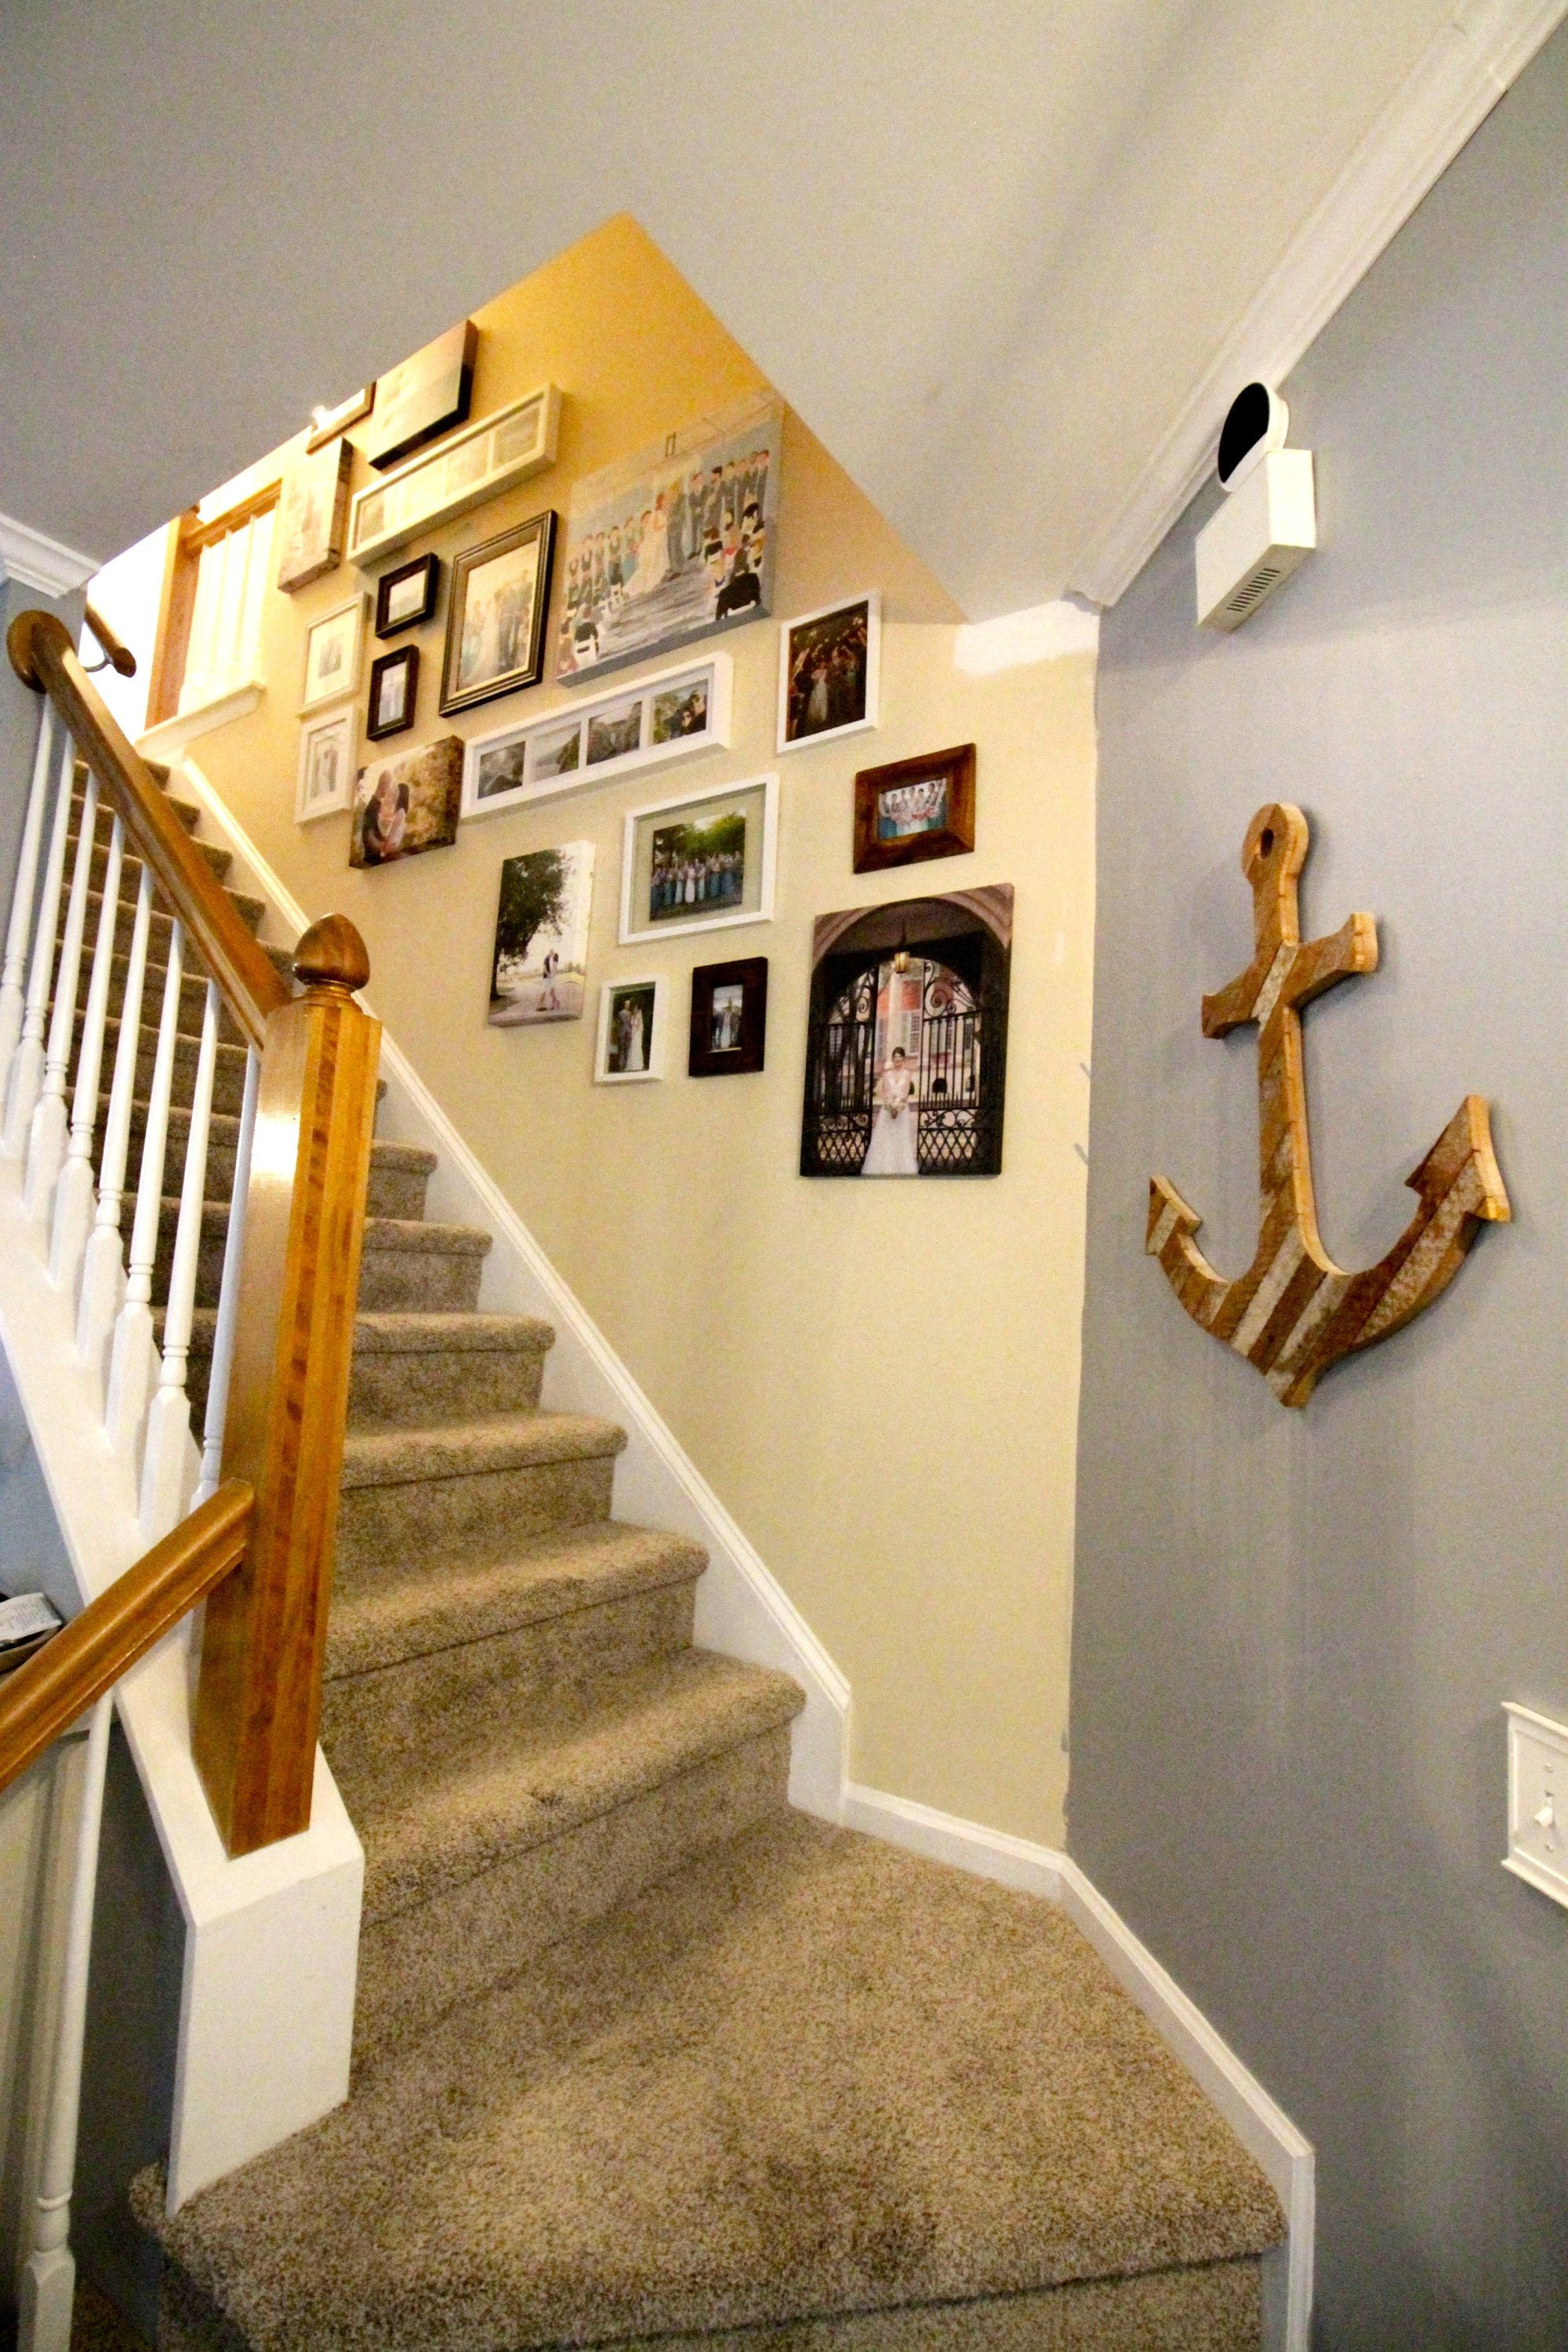 Unique Gallery Wall Layout Ideas | Gallery wall, Gallery wall layout ...